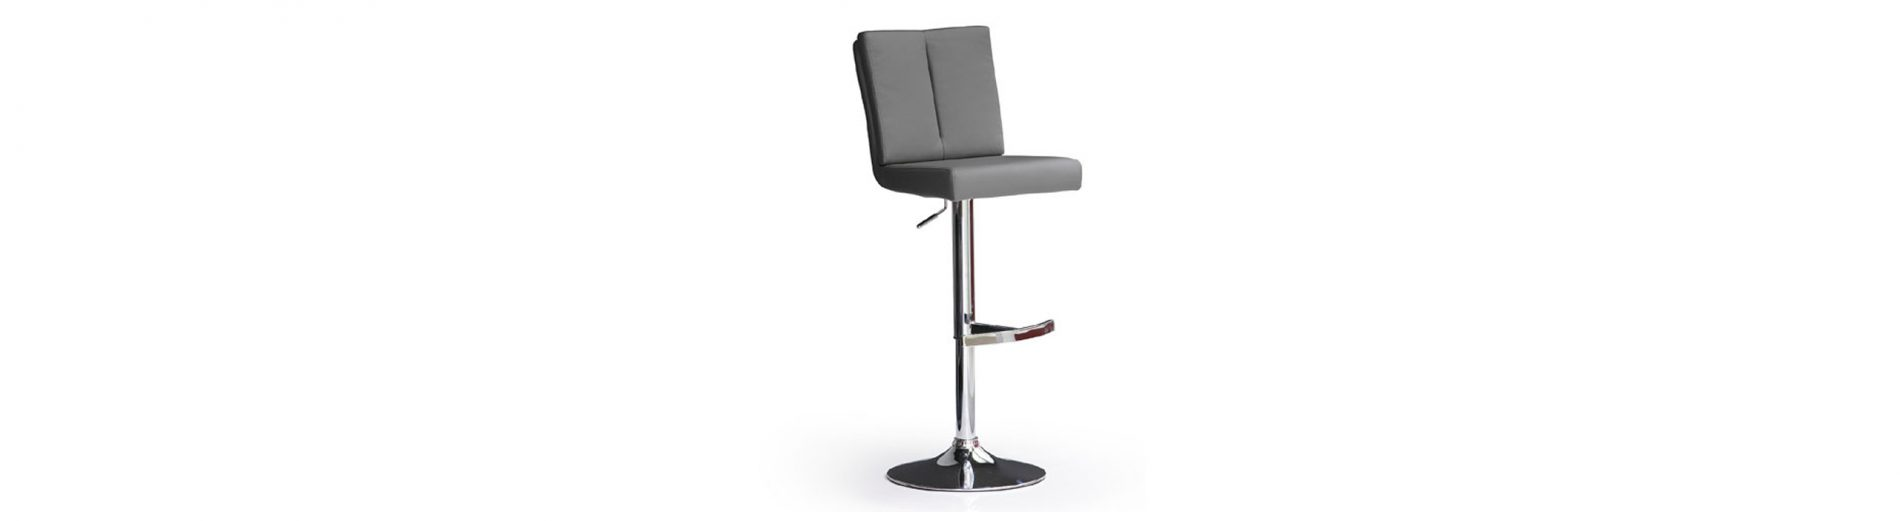 High Back Gas Lift Bar Stools: Material Types